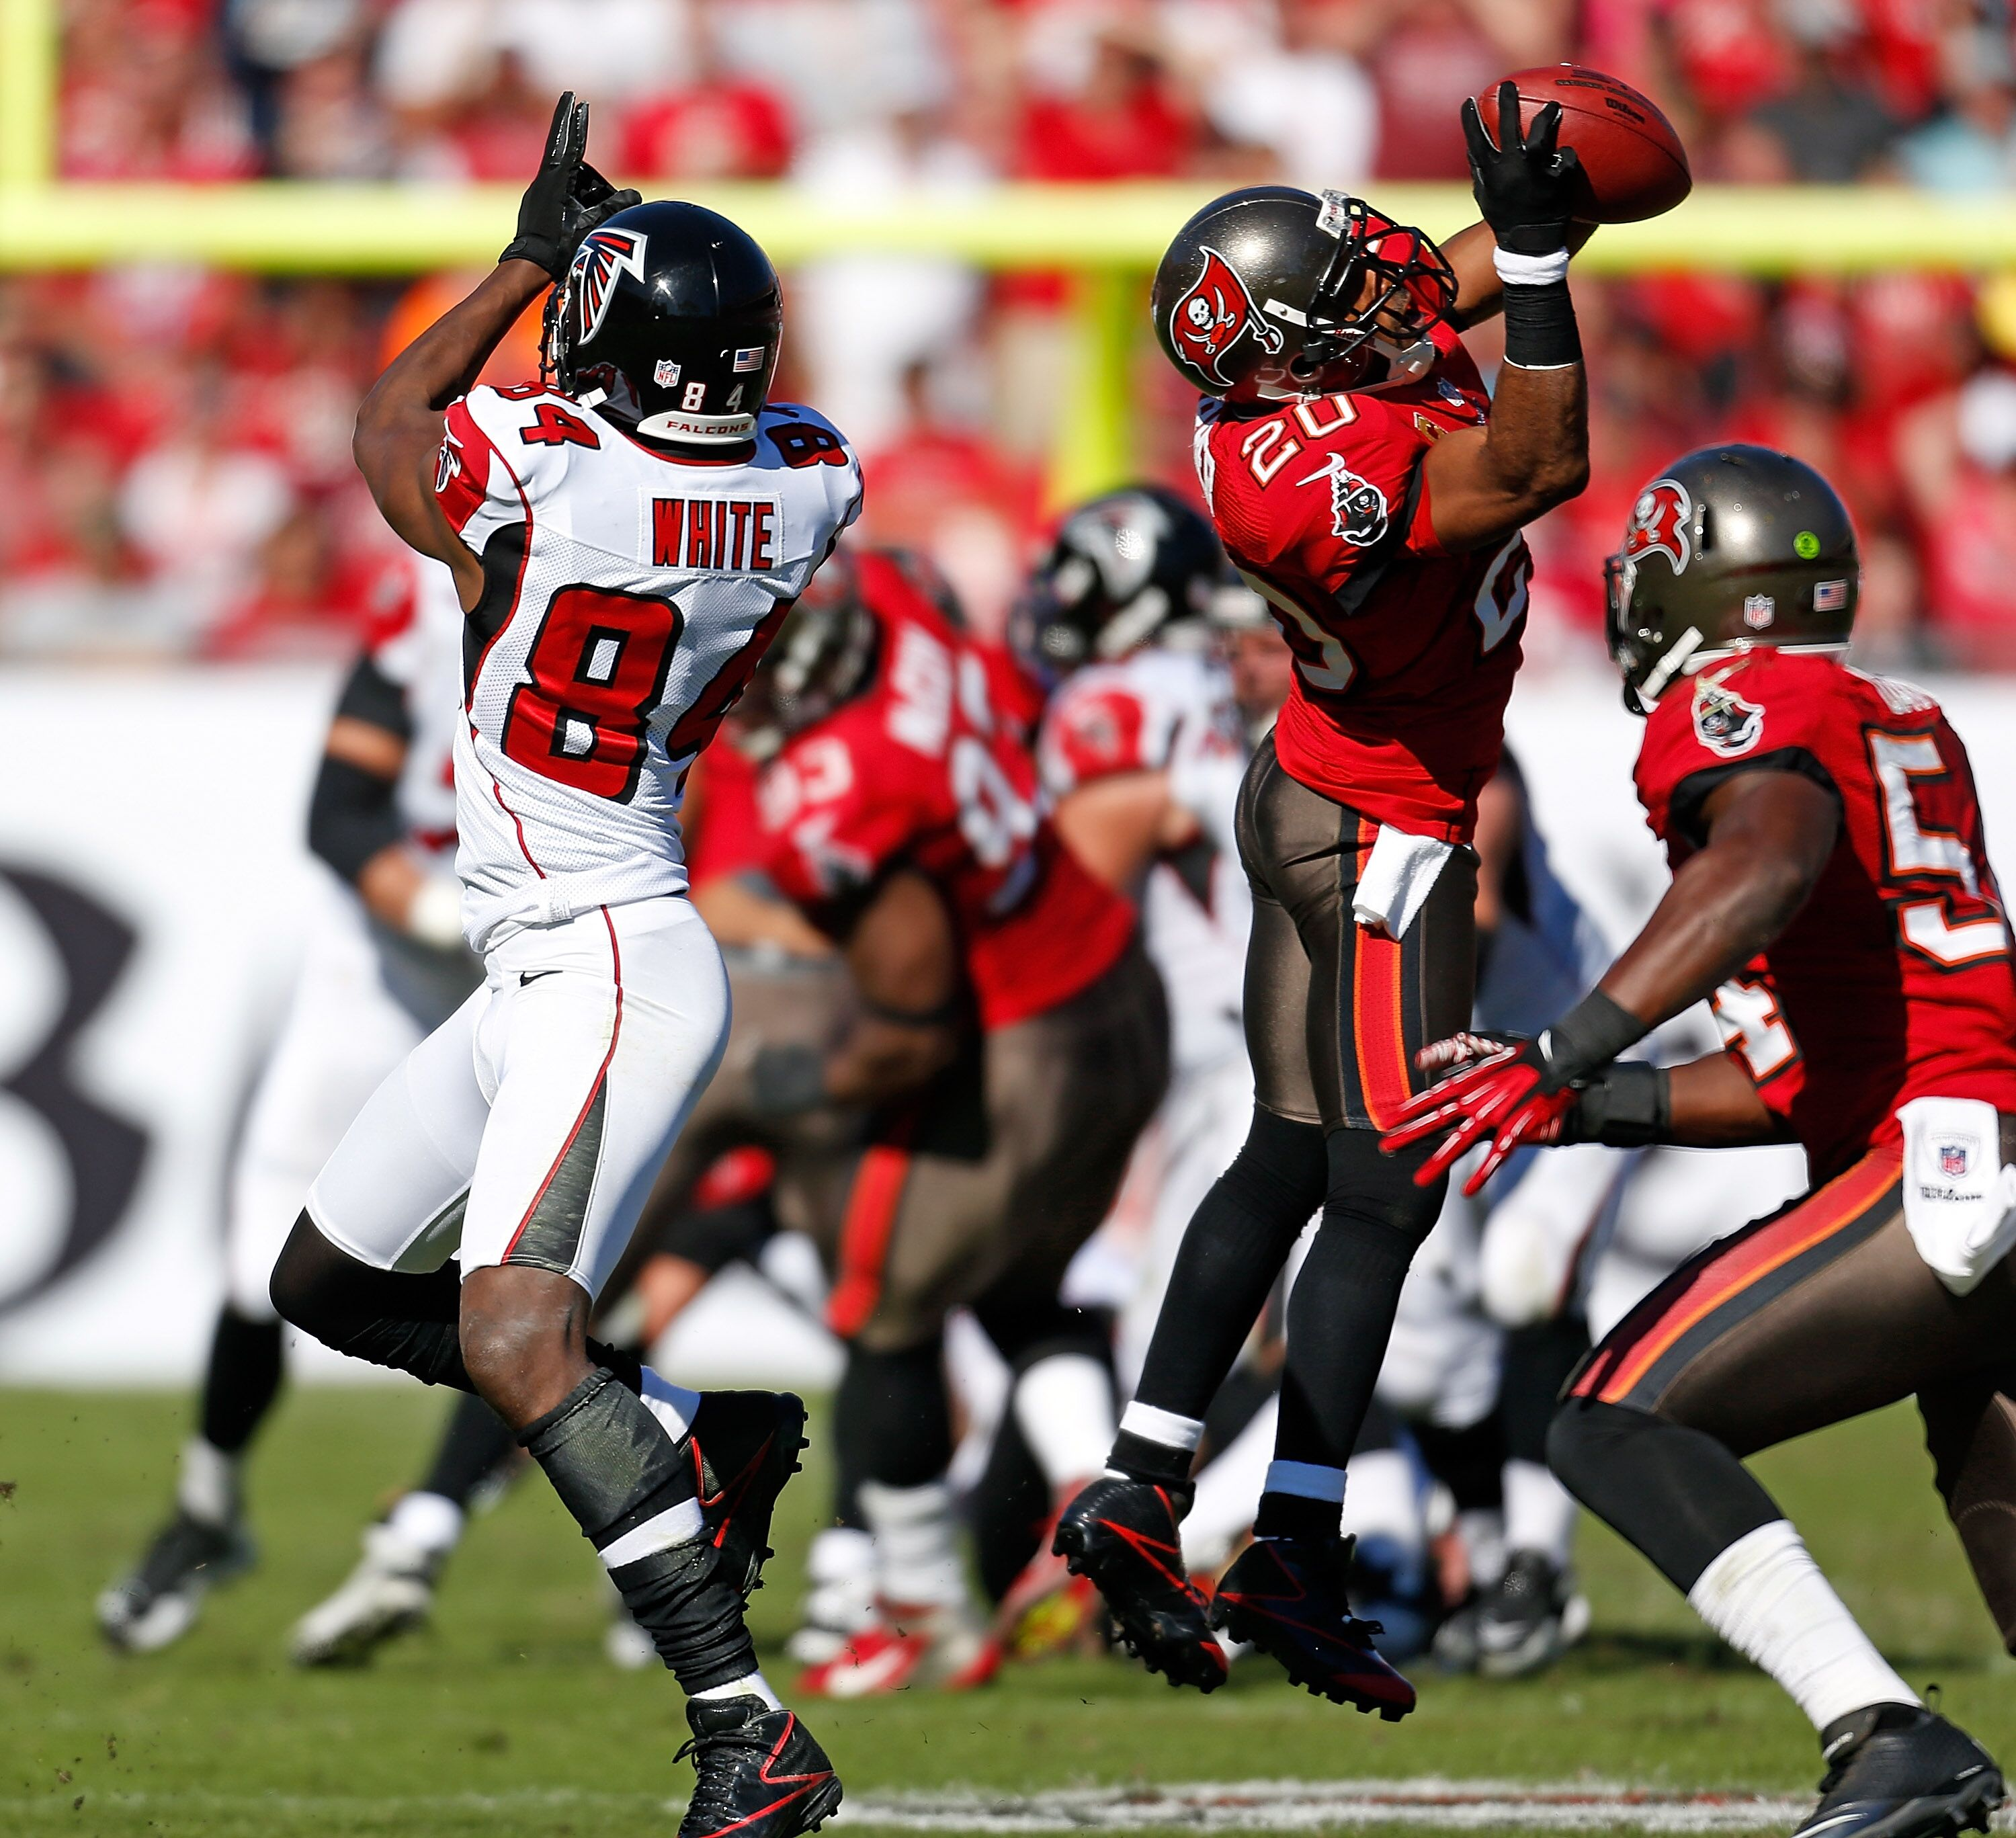 156936628-atlanta-falcons-v-tampa-bay-buccaneers.jpg